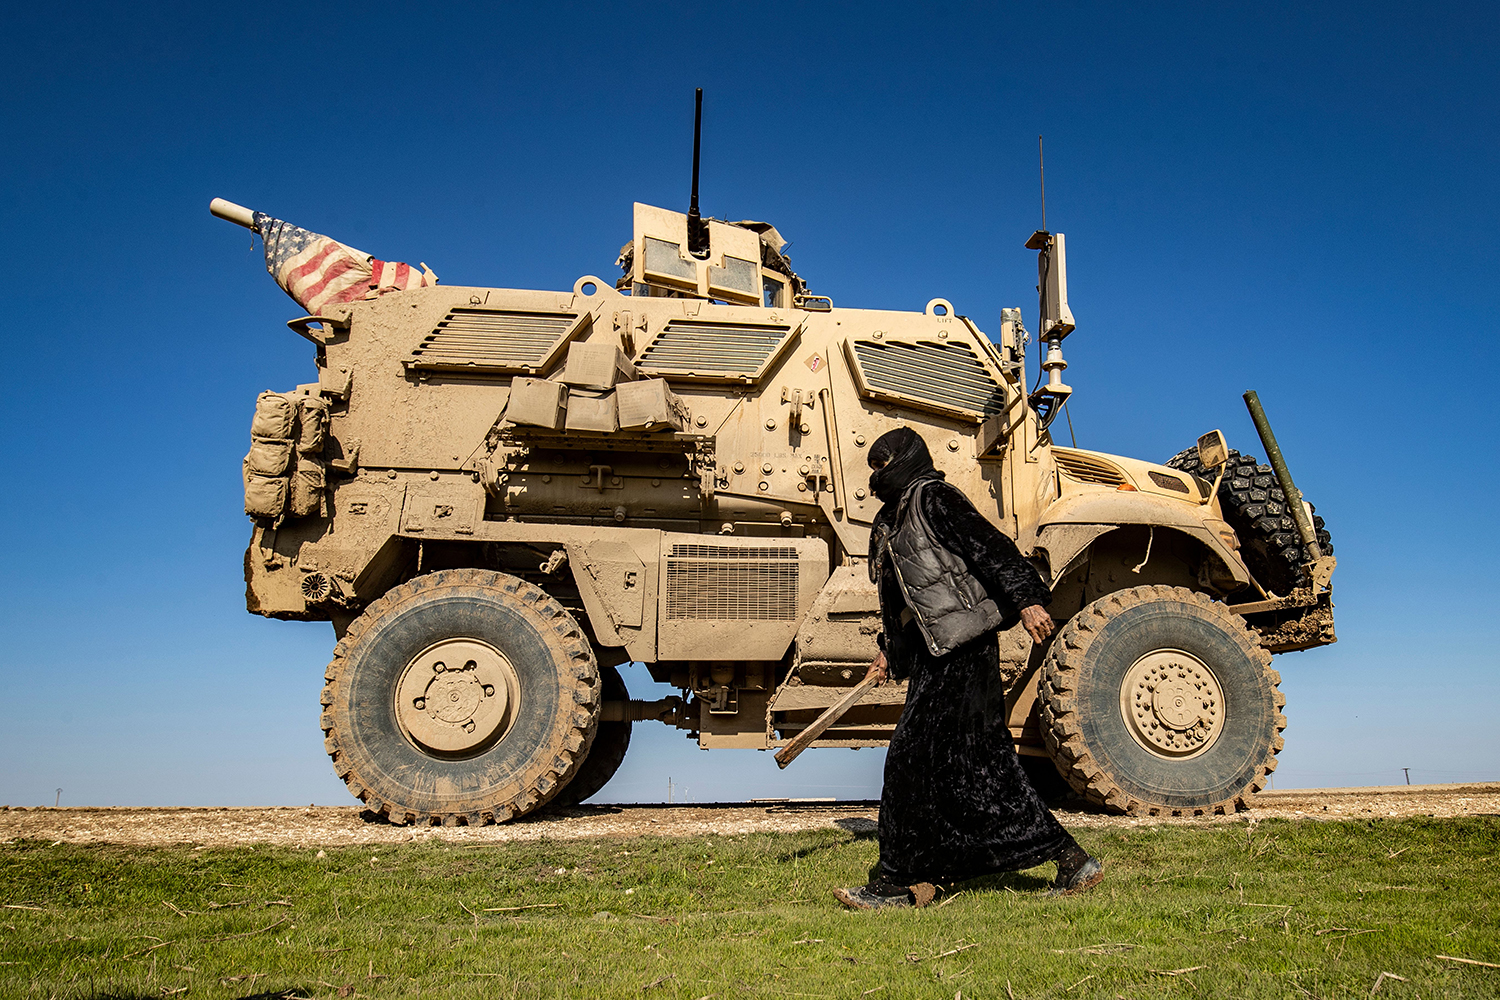 A Syrian woman walks past a U.S. military armored vehicle patrolling the village of Al-Jawadiyah in the northeastern Hasakeh province, near the border with Turkey, on Jan. 22. DELIL SOULEIMAN/AFP via Getty Images